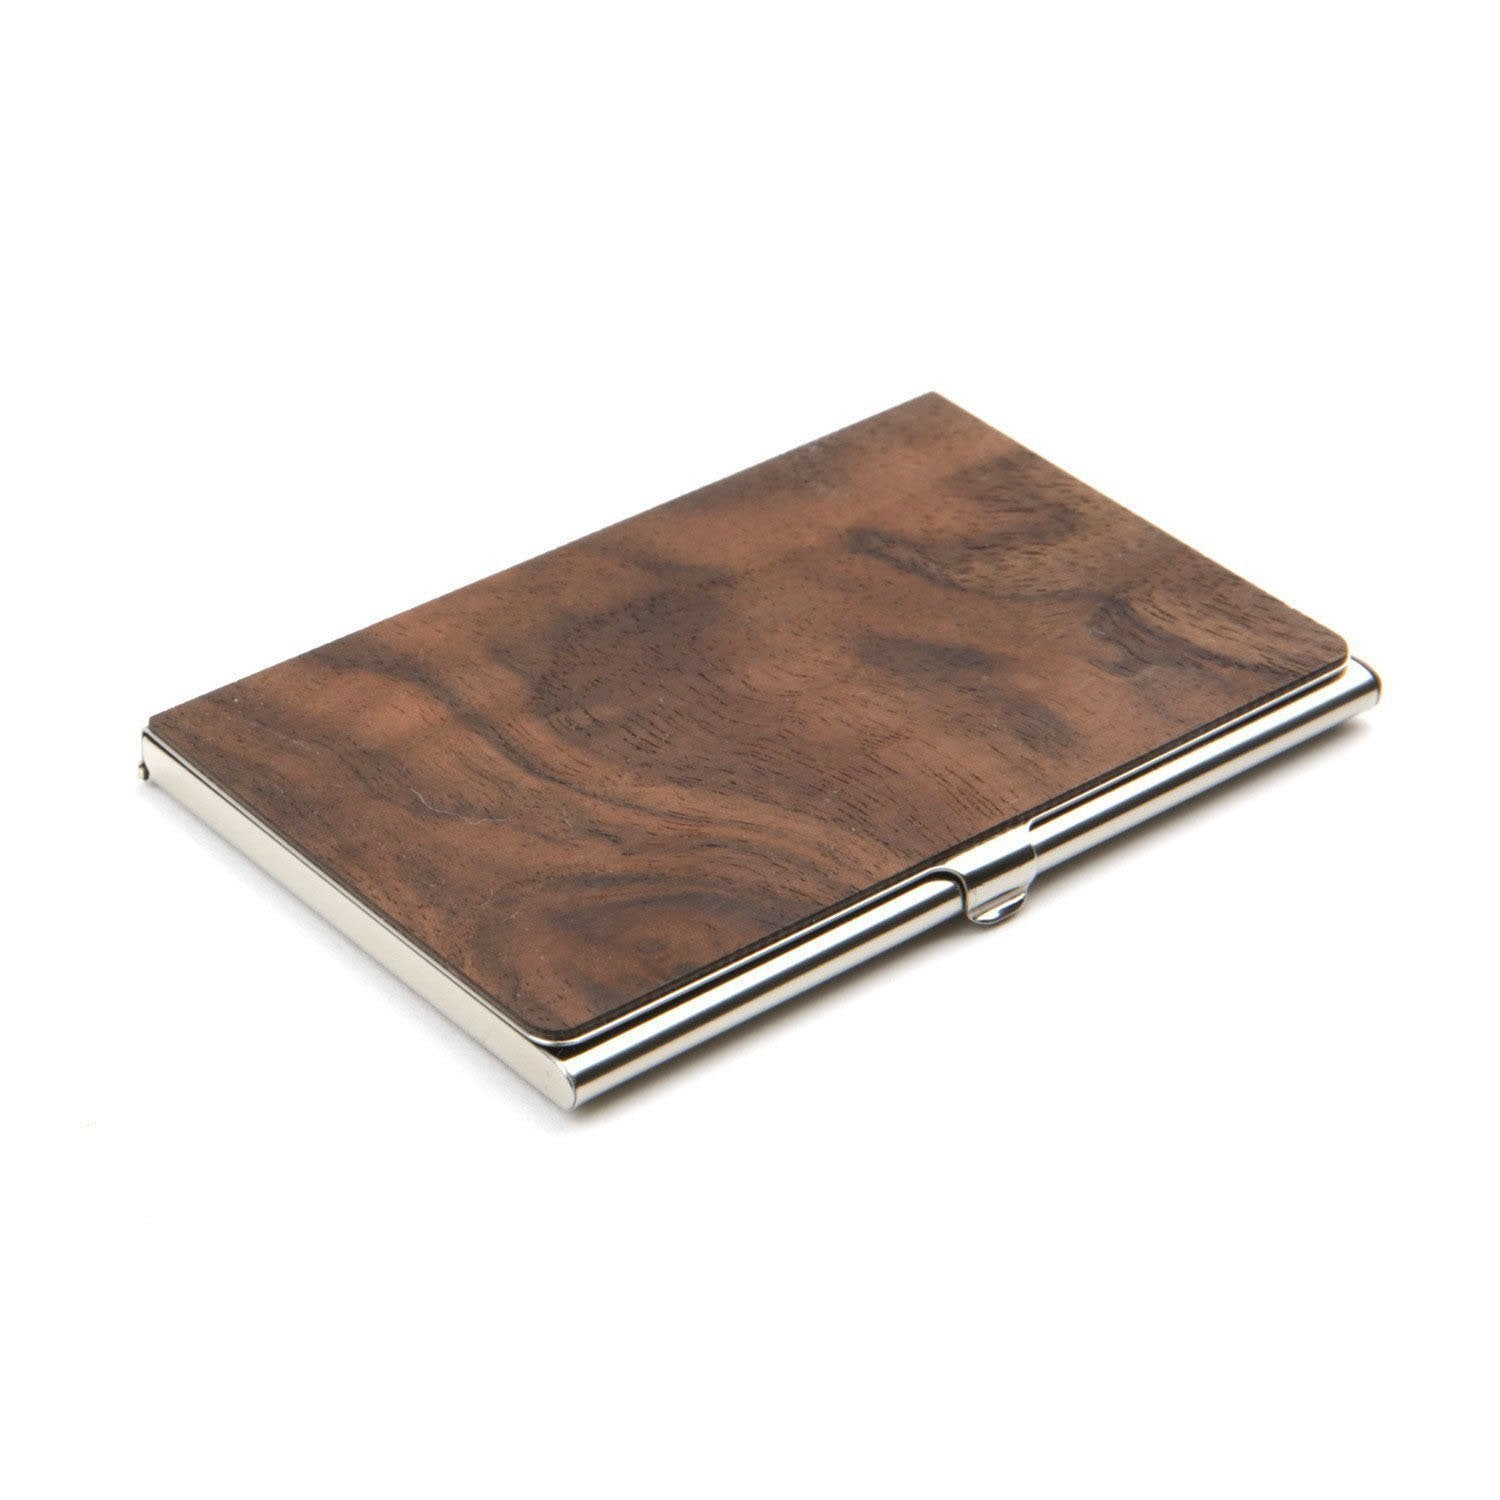 wood business card holder woodchuck usa - Metal Business Card Case